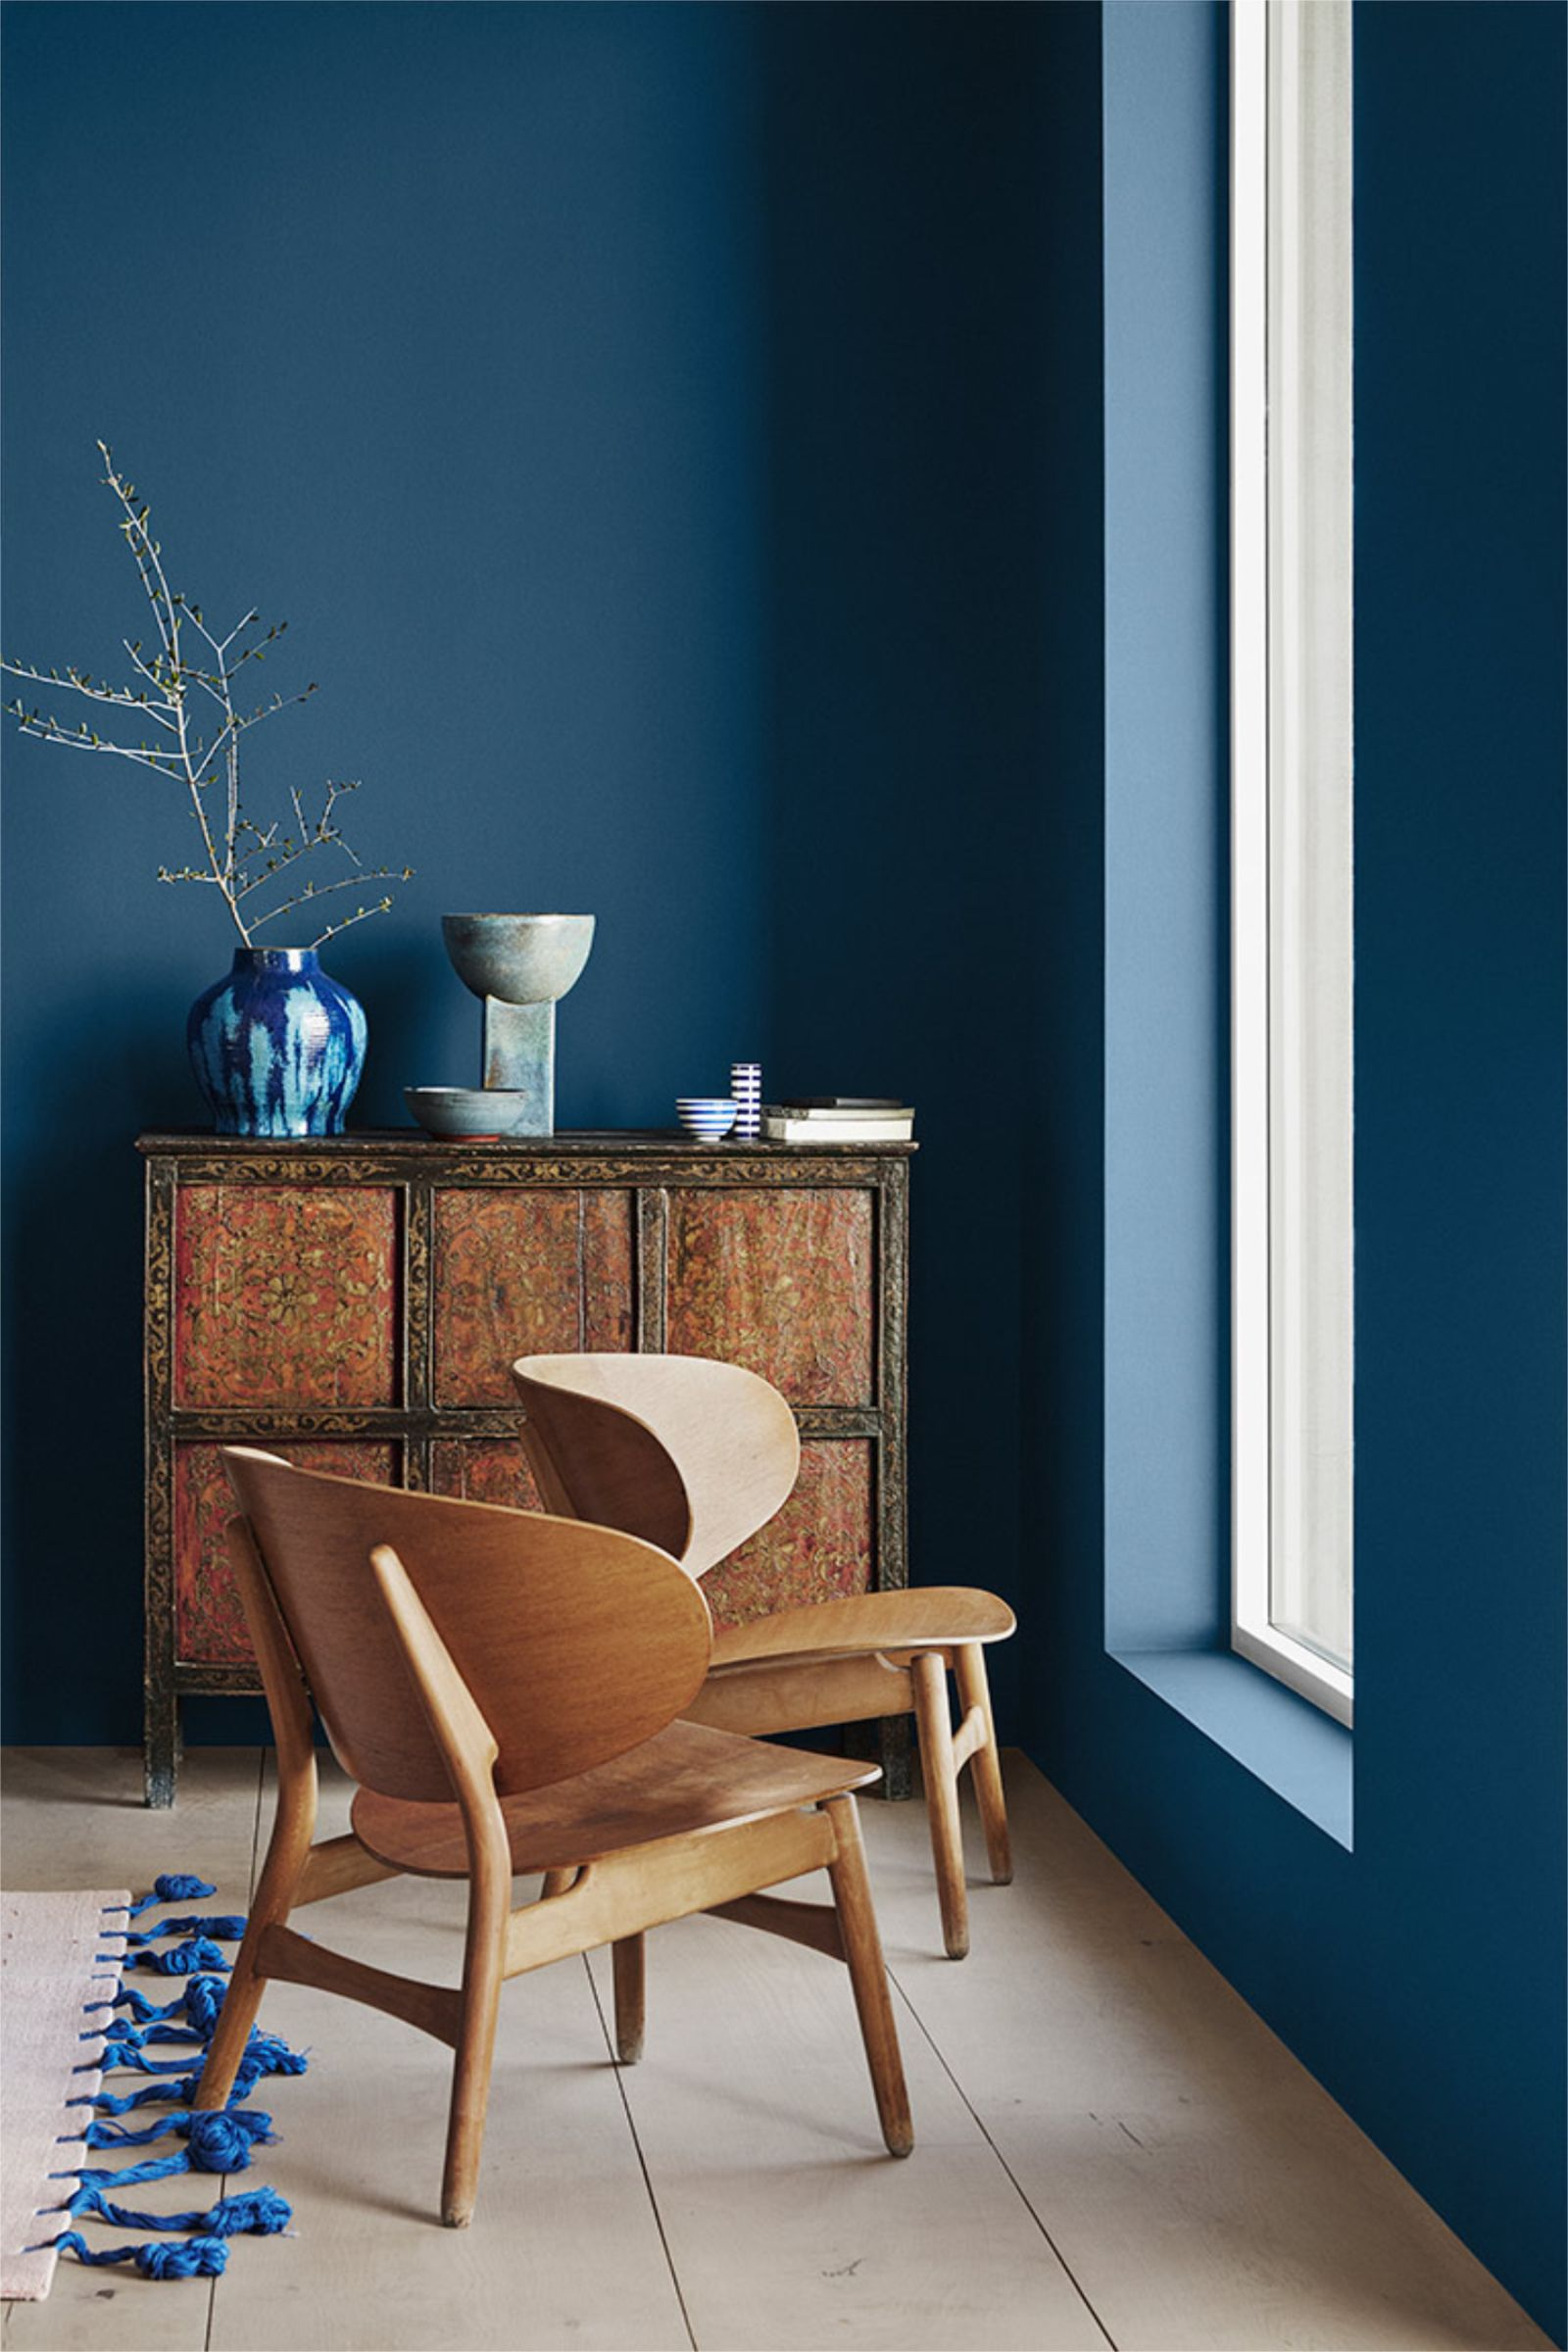 The Scandinavian Interior Colour Trends Of 2020 From Jotun Lady Blue Interior Design Colorful Interiors Classic Blue Pantone